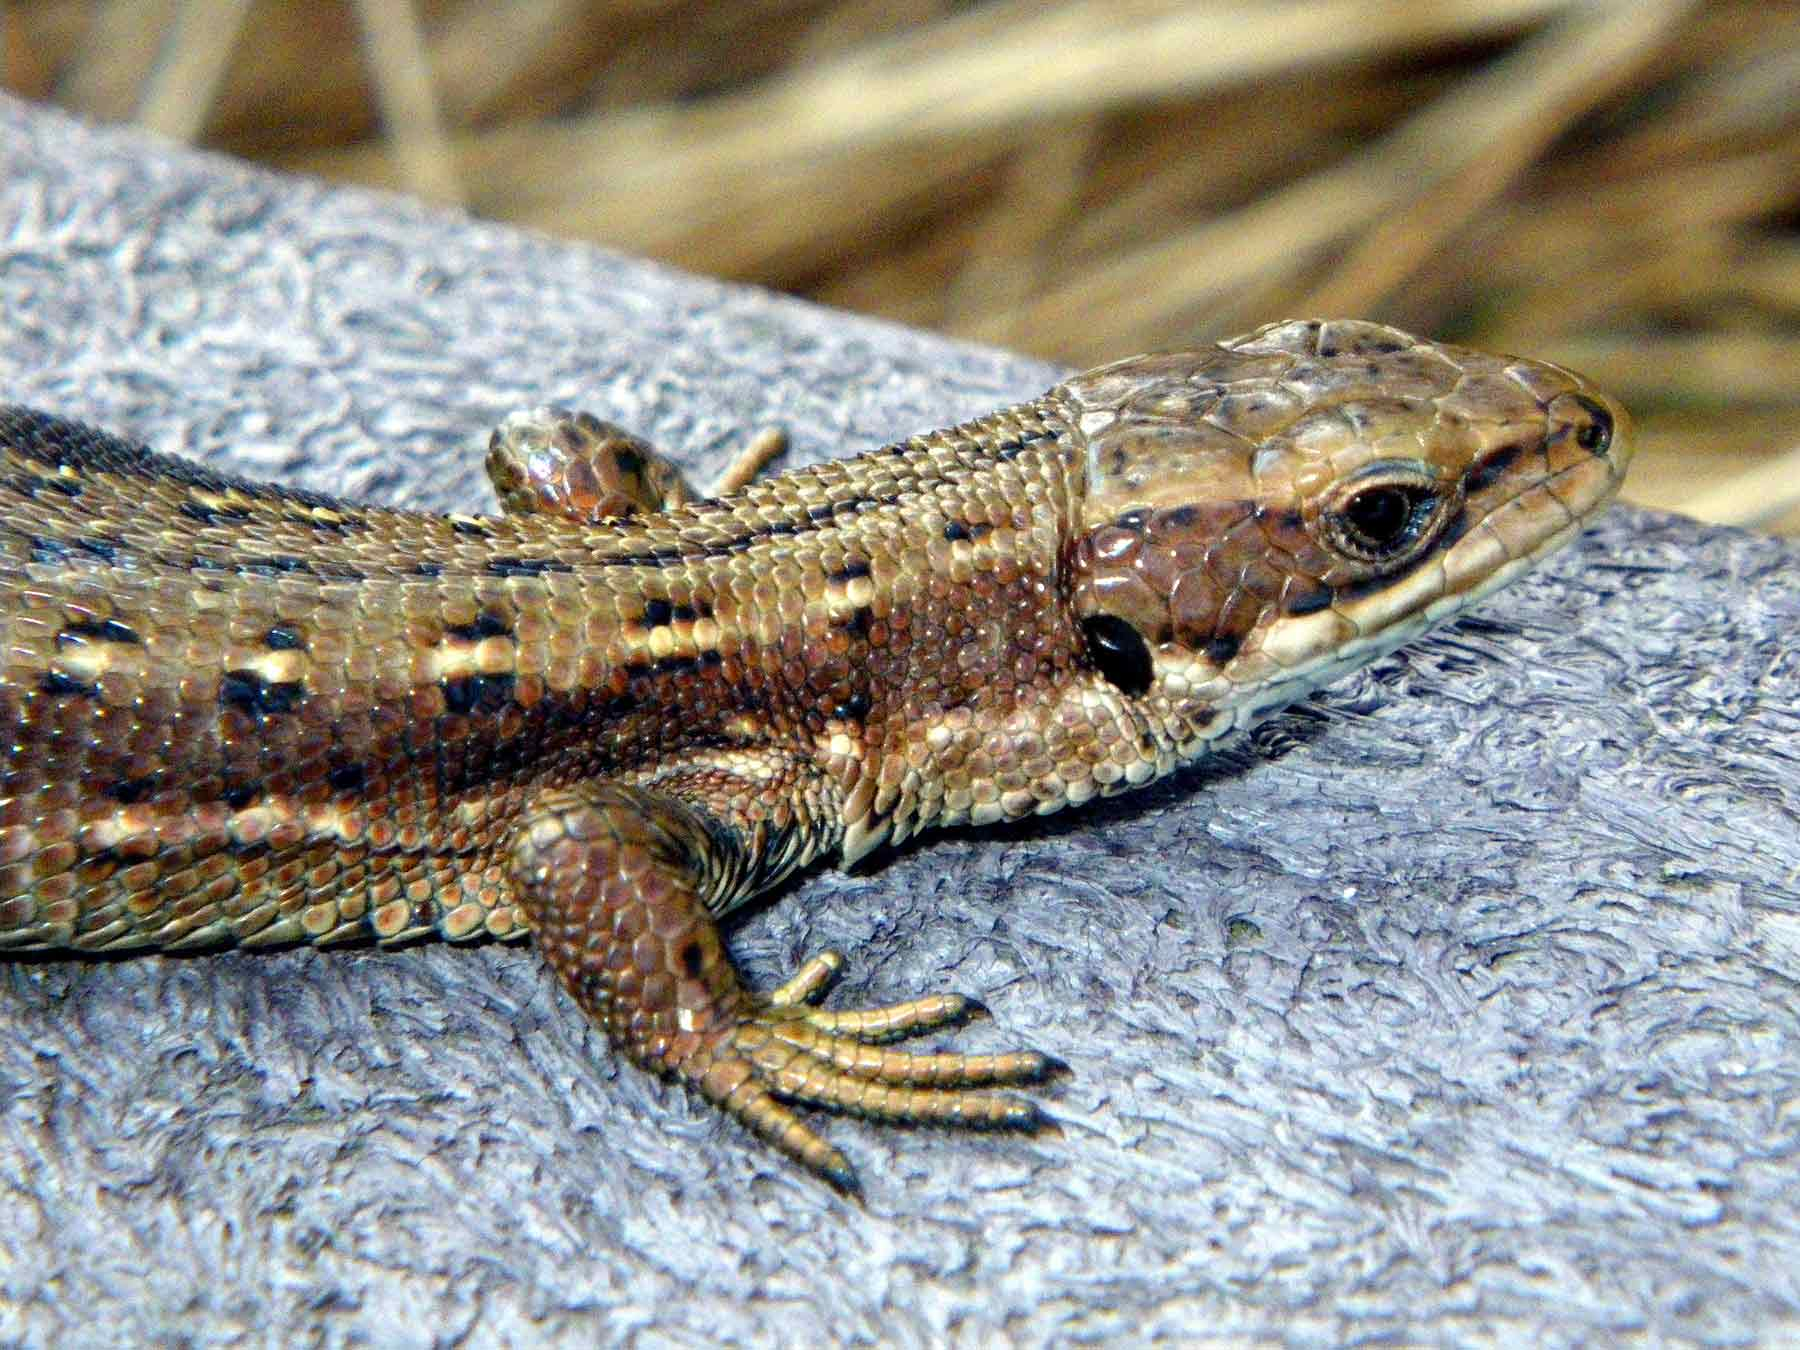 Caledonian-Lizard-very-small.jpg